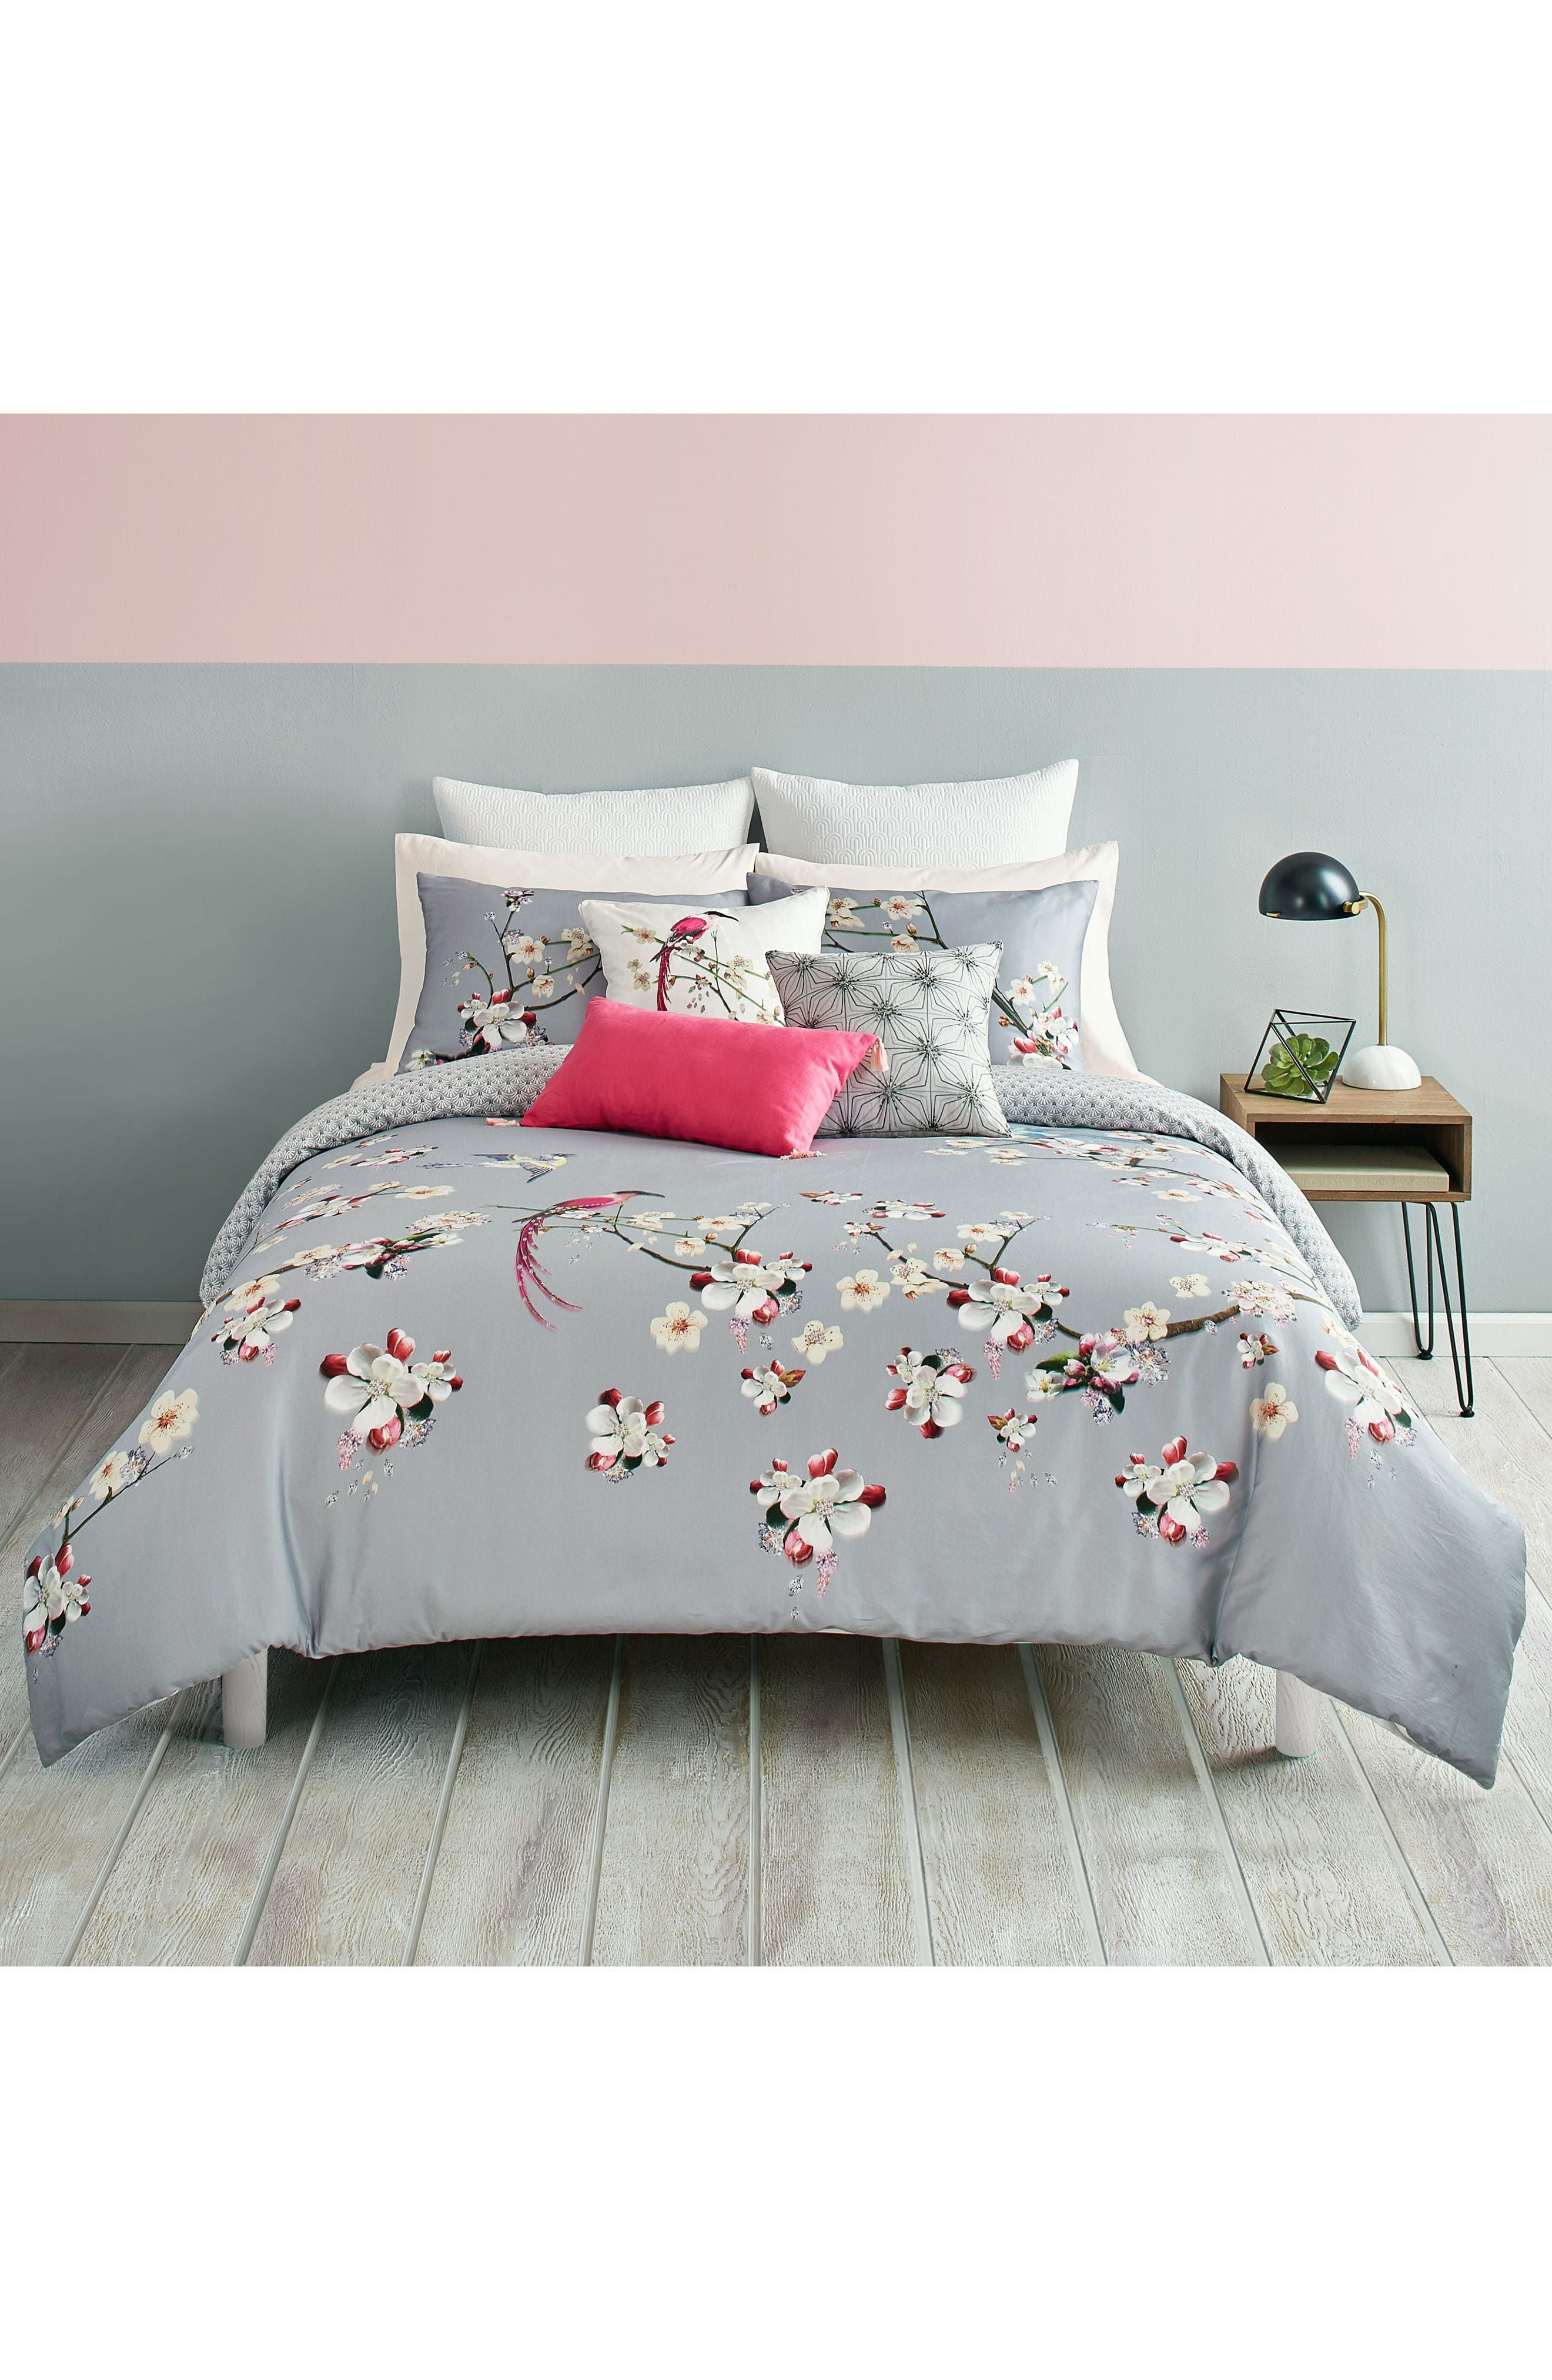 anthropologie shop duvet riji shopping findpronow promotion bed karan cover img bedding best store from donna the home